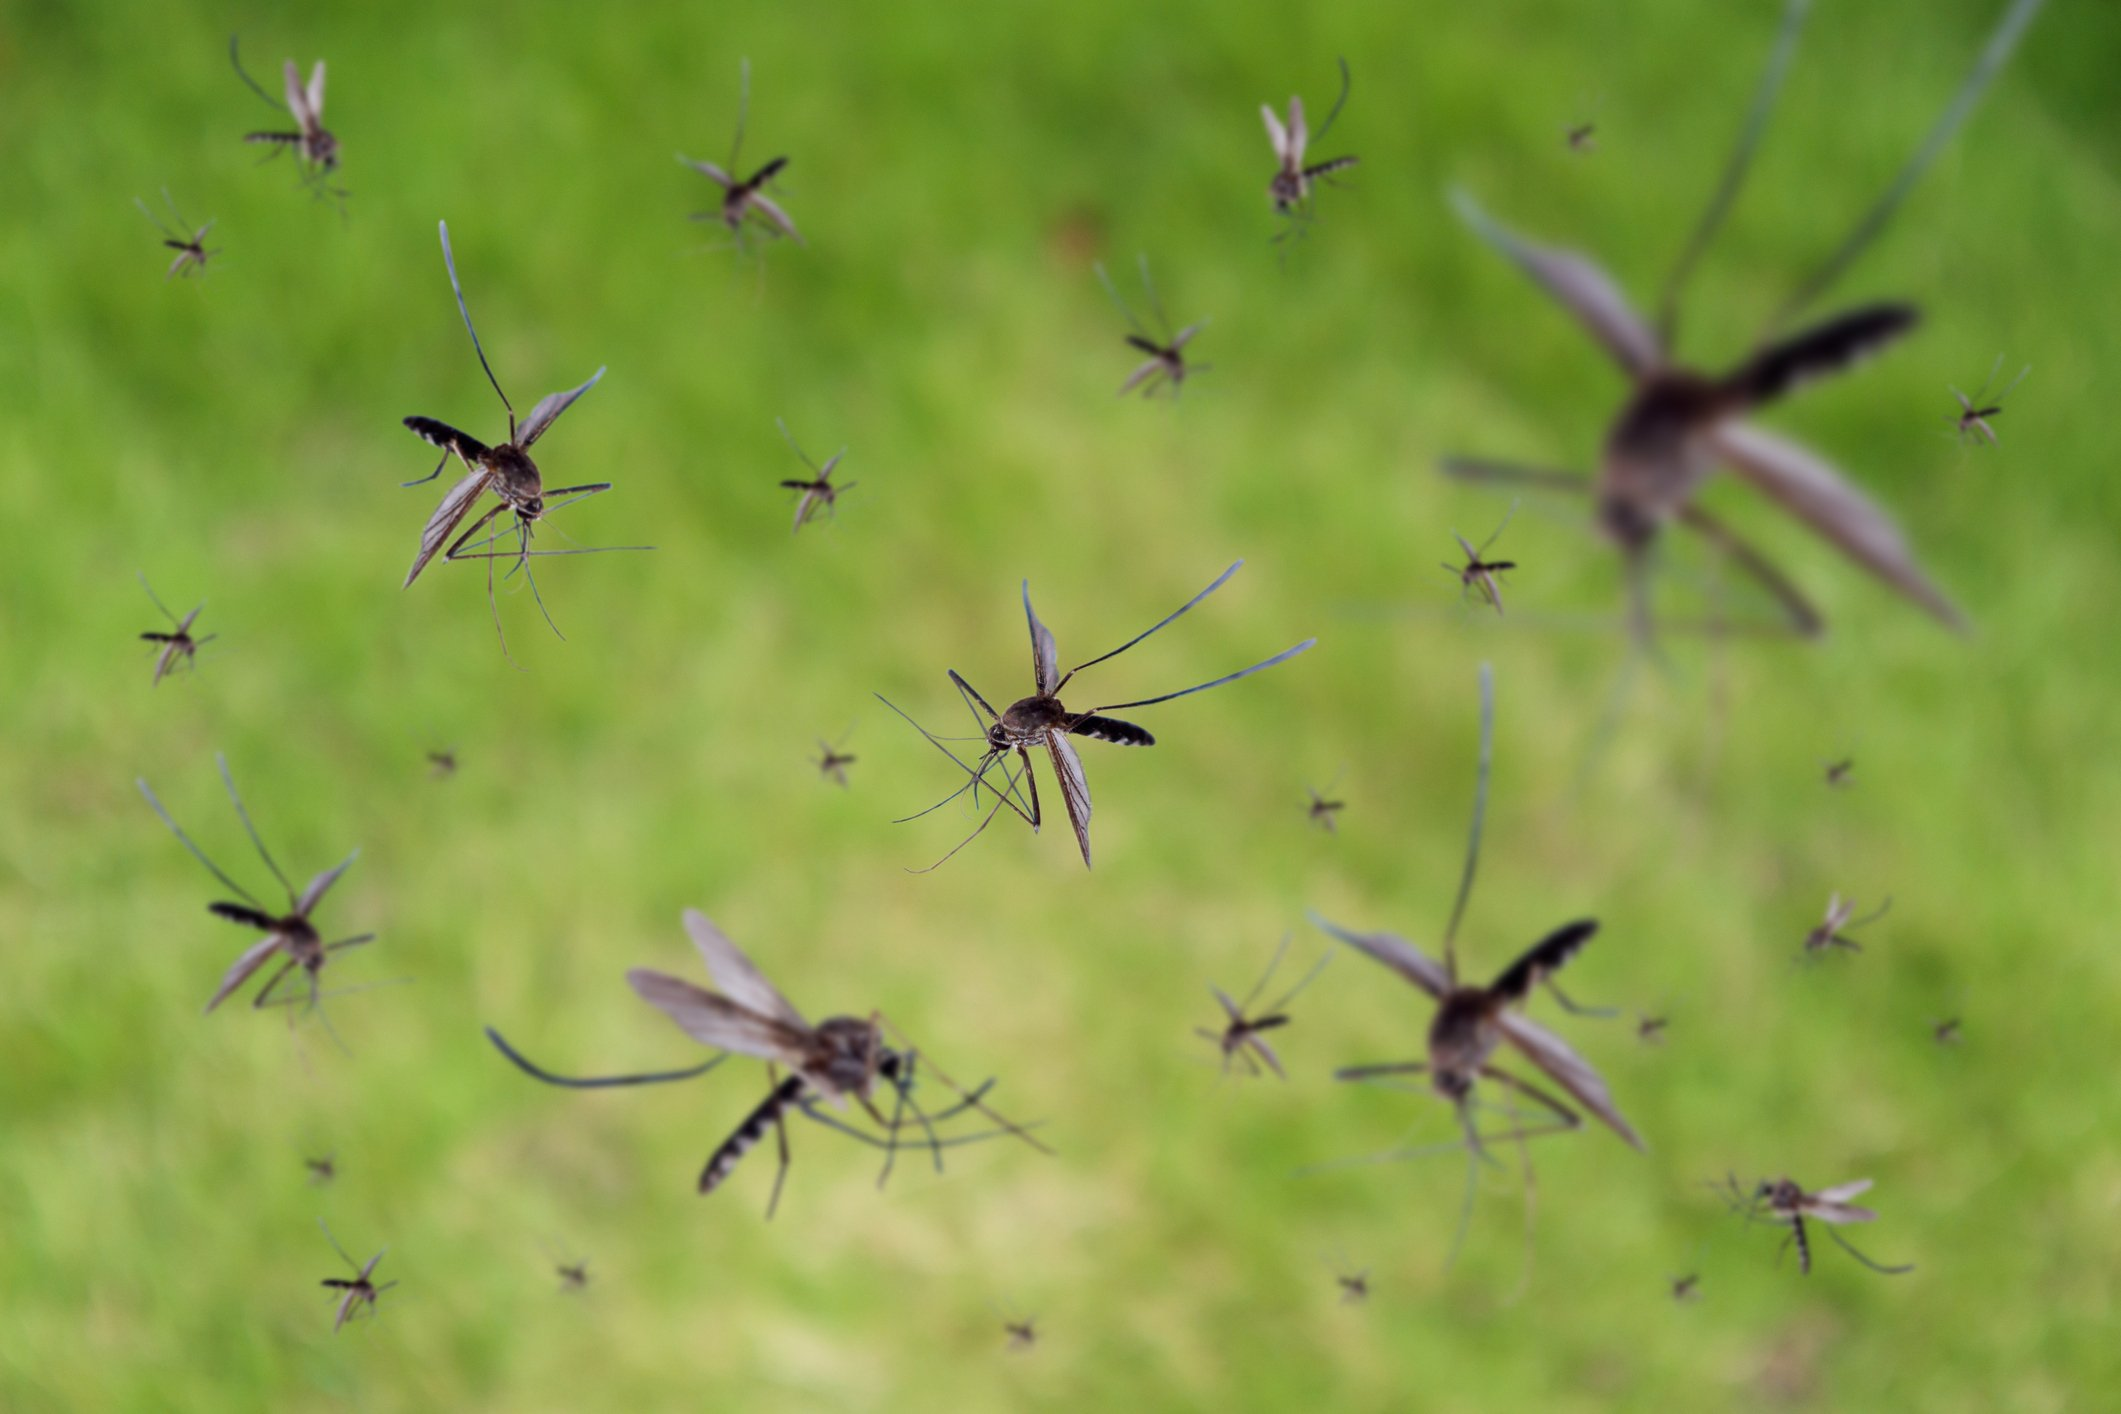 Modified Mosquitoes to Fight Disease (Abstract Science, Aug. 16 - 22)